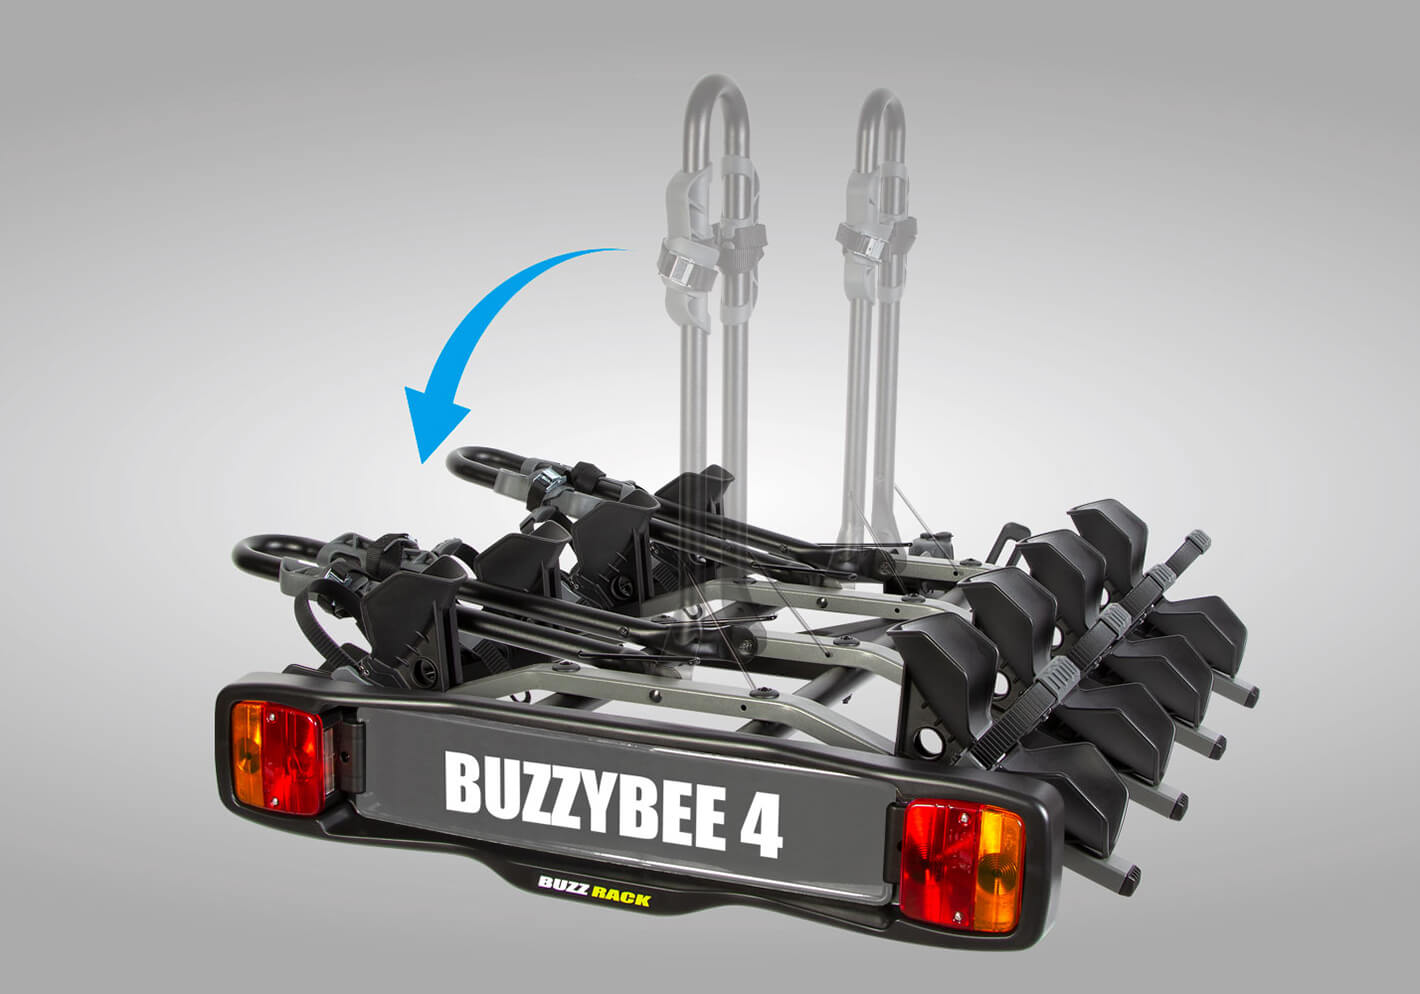 BUZZ RACK BB4 - 4 bike wheel support rack no. BRP324